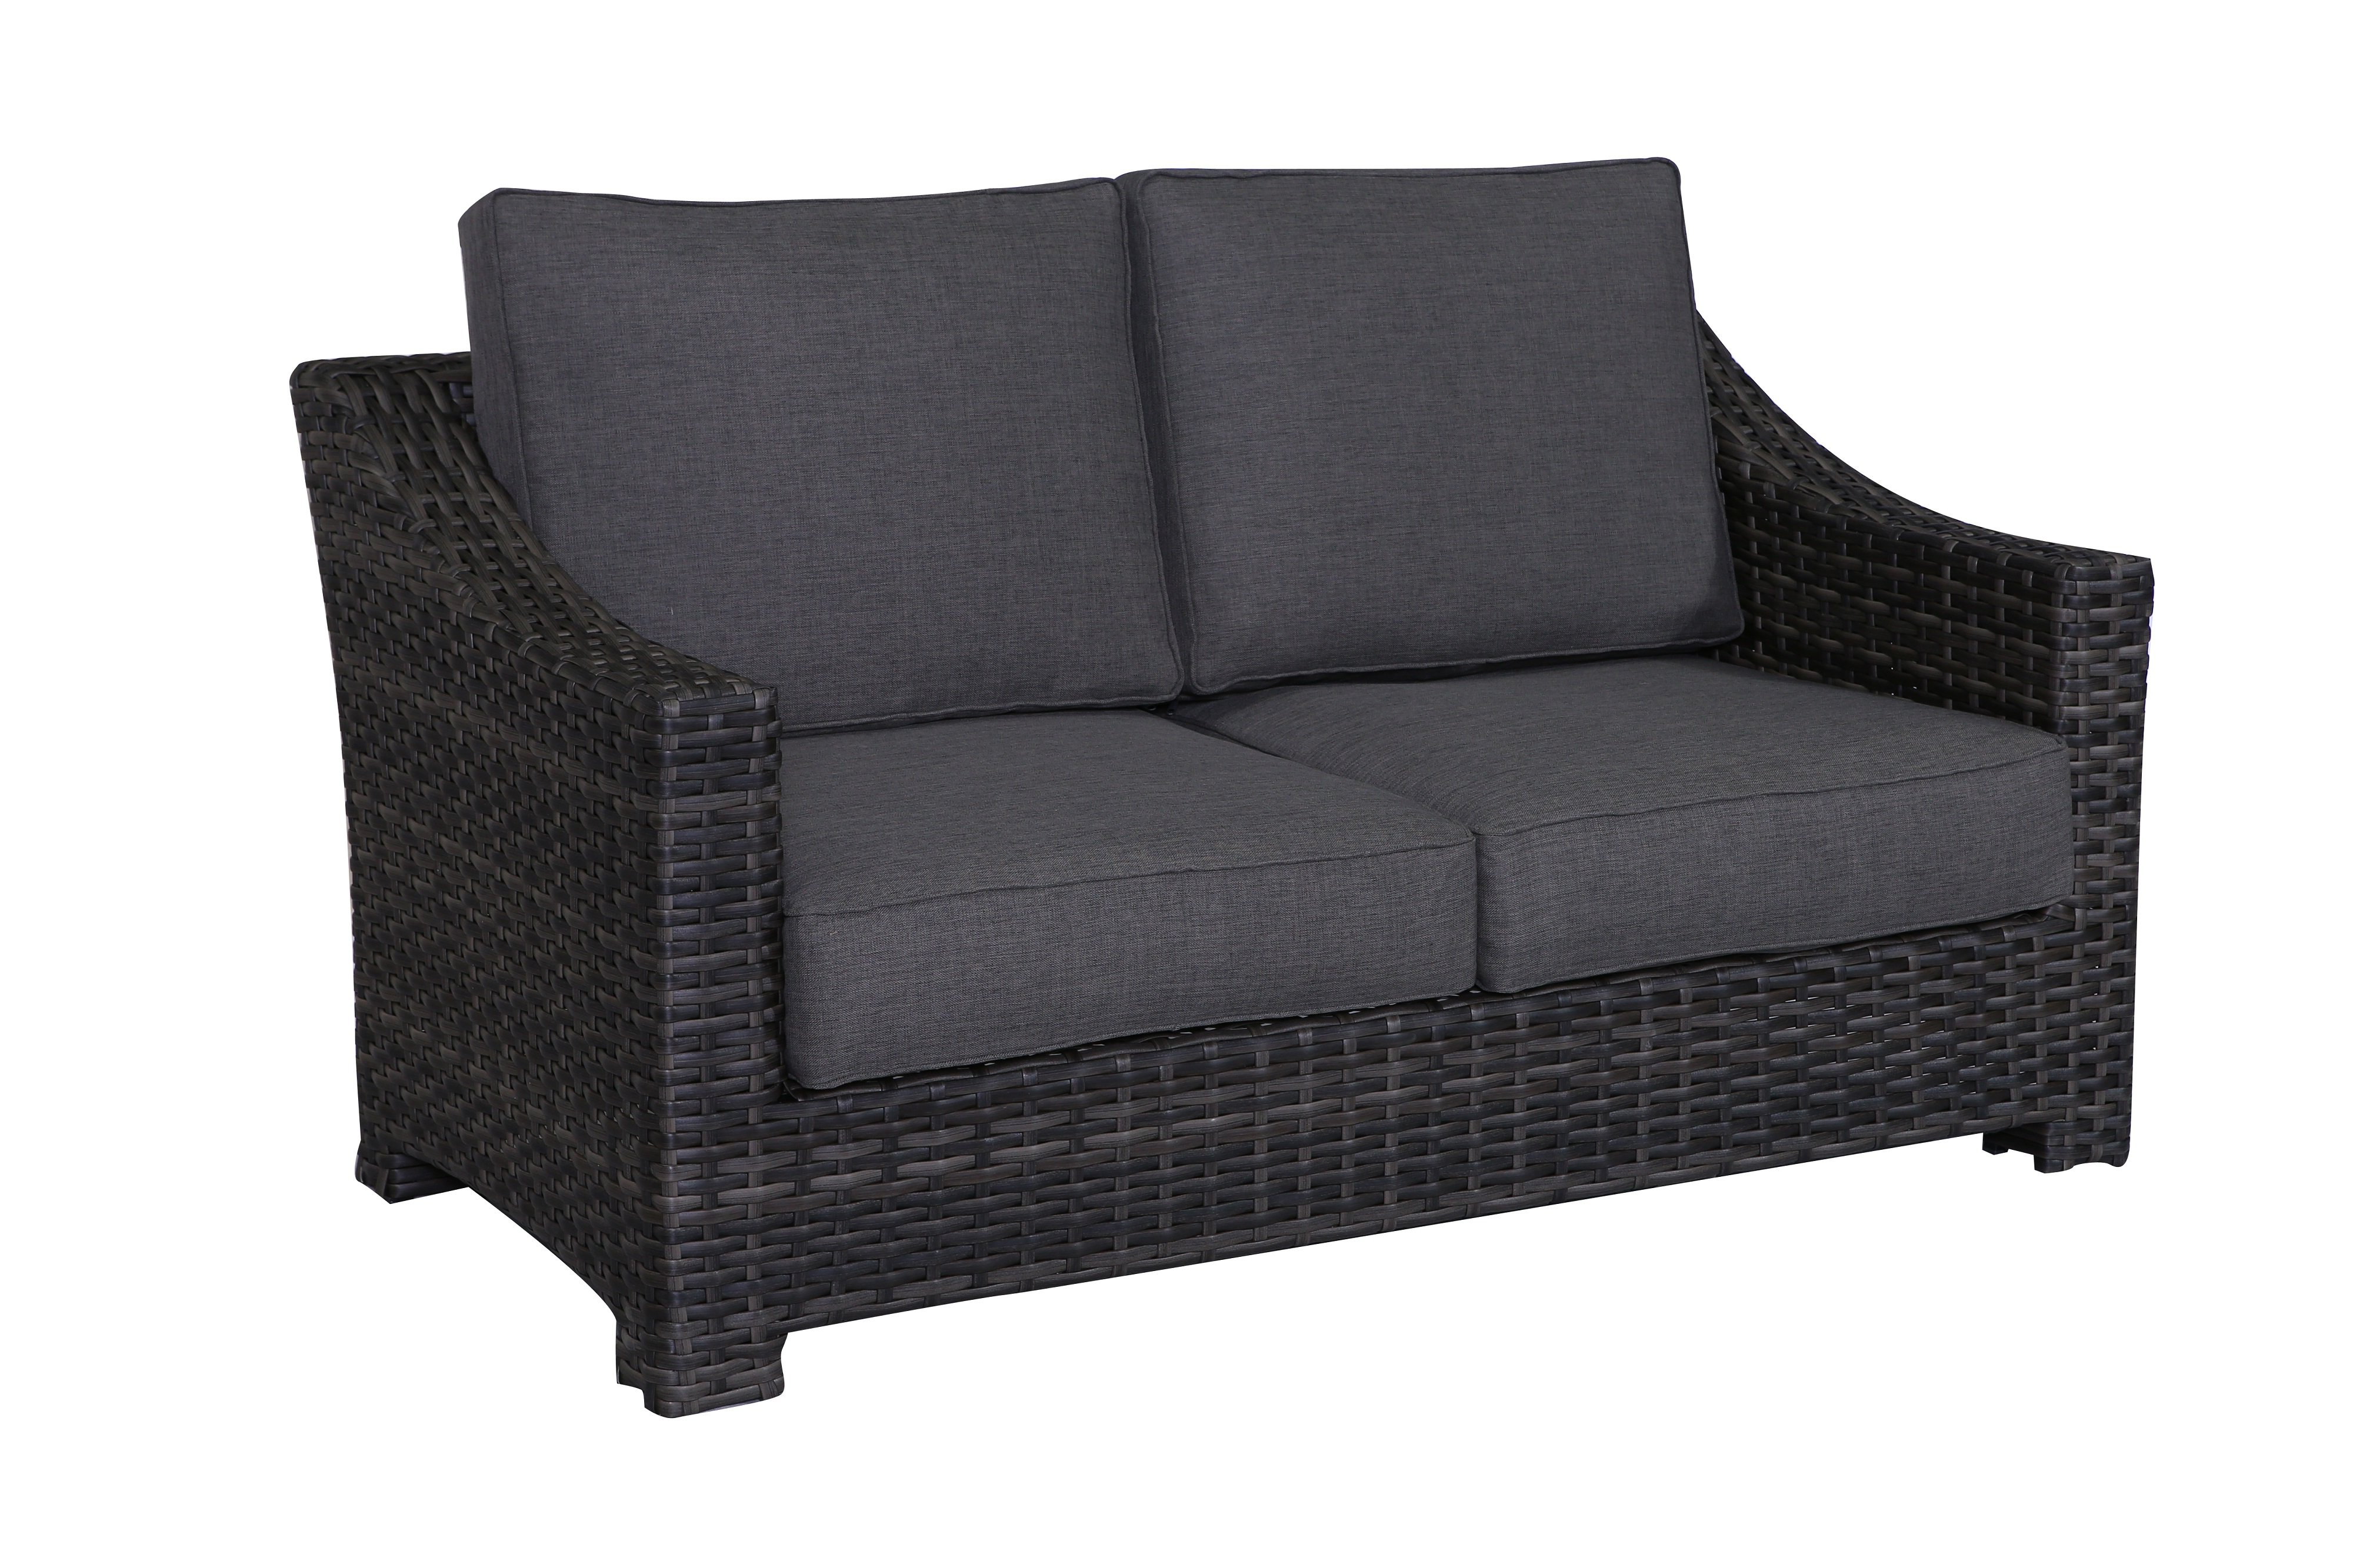 Donley Loveseat With Cushions Regarding Most Up To Date Mendelson Loveseats With Cushion (View 5 of 20)